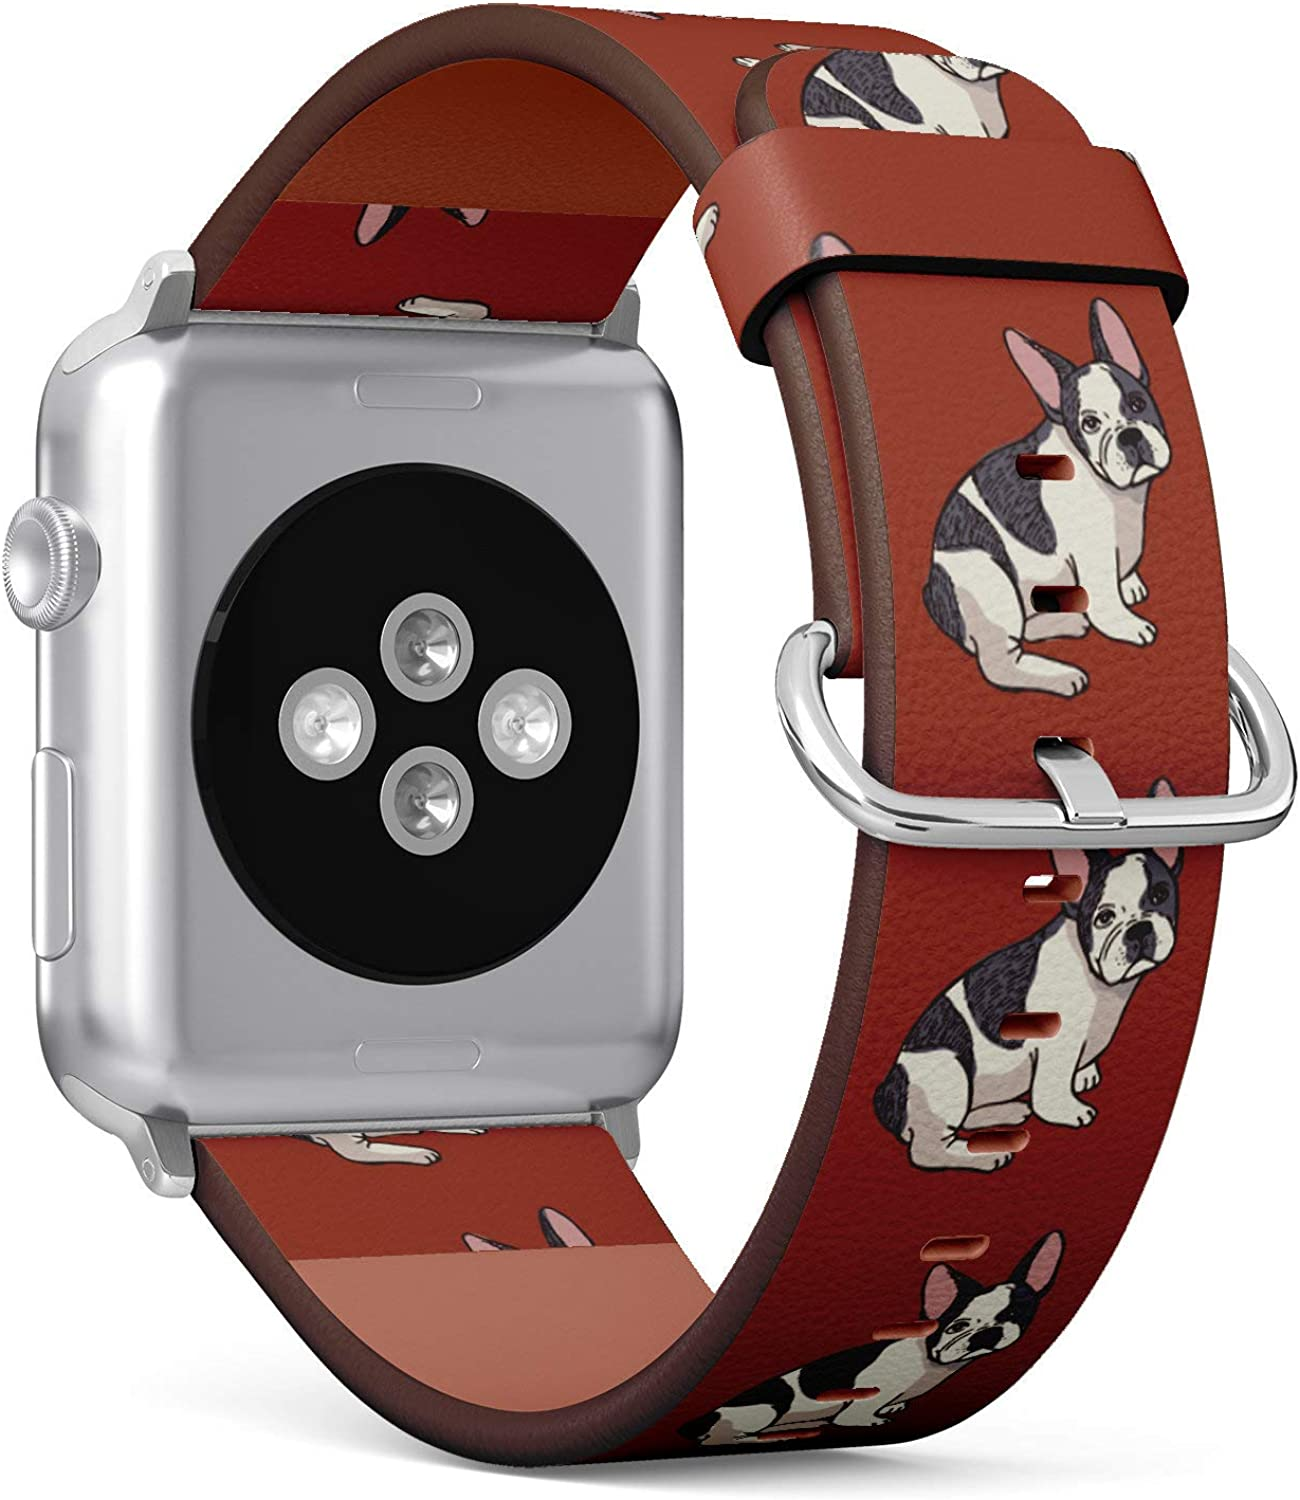 (Adorbale Boston Terrier) Patterned Leather Wristband Strap for Apple Watch Series 4/3/2/1 gen,Replacement for iWatch 38mm / 40mm Bands